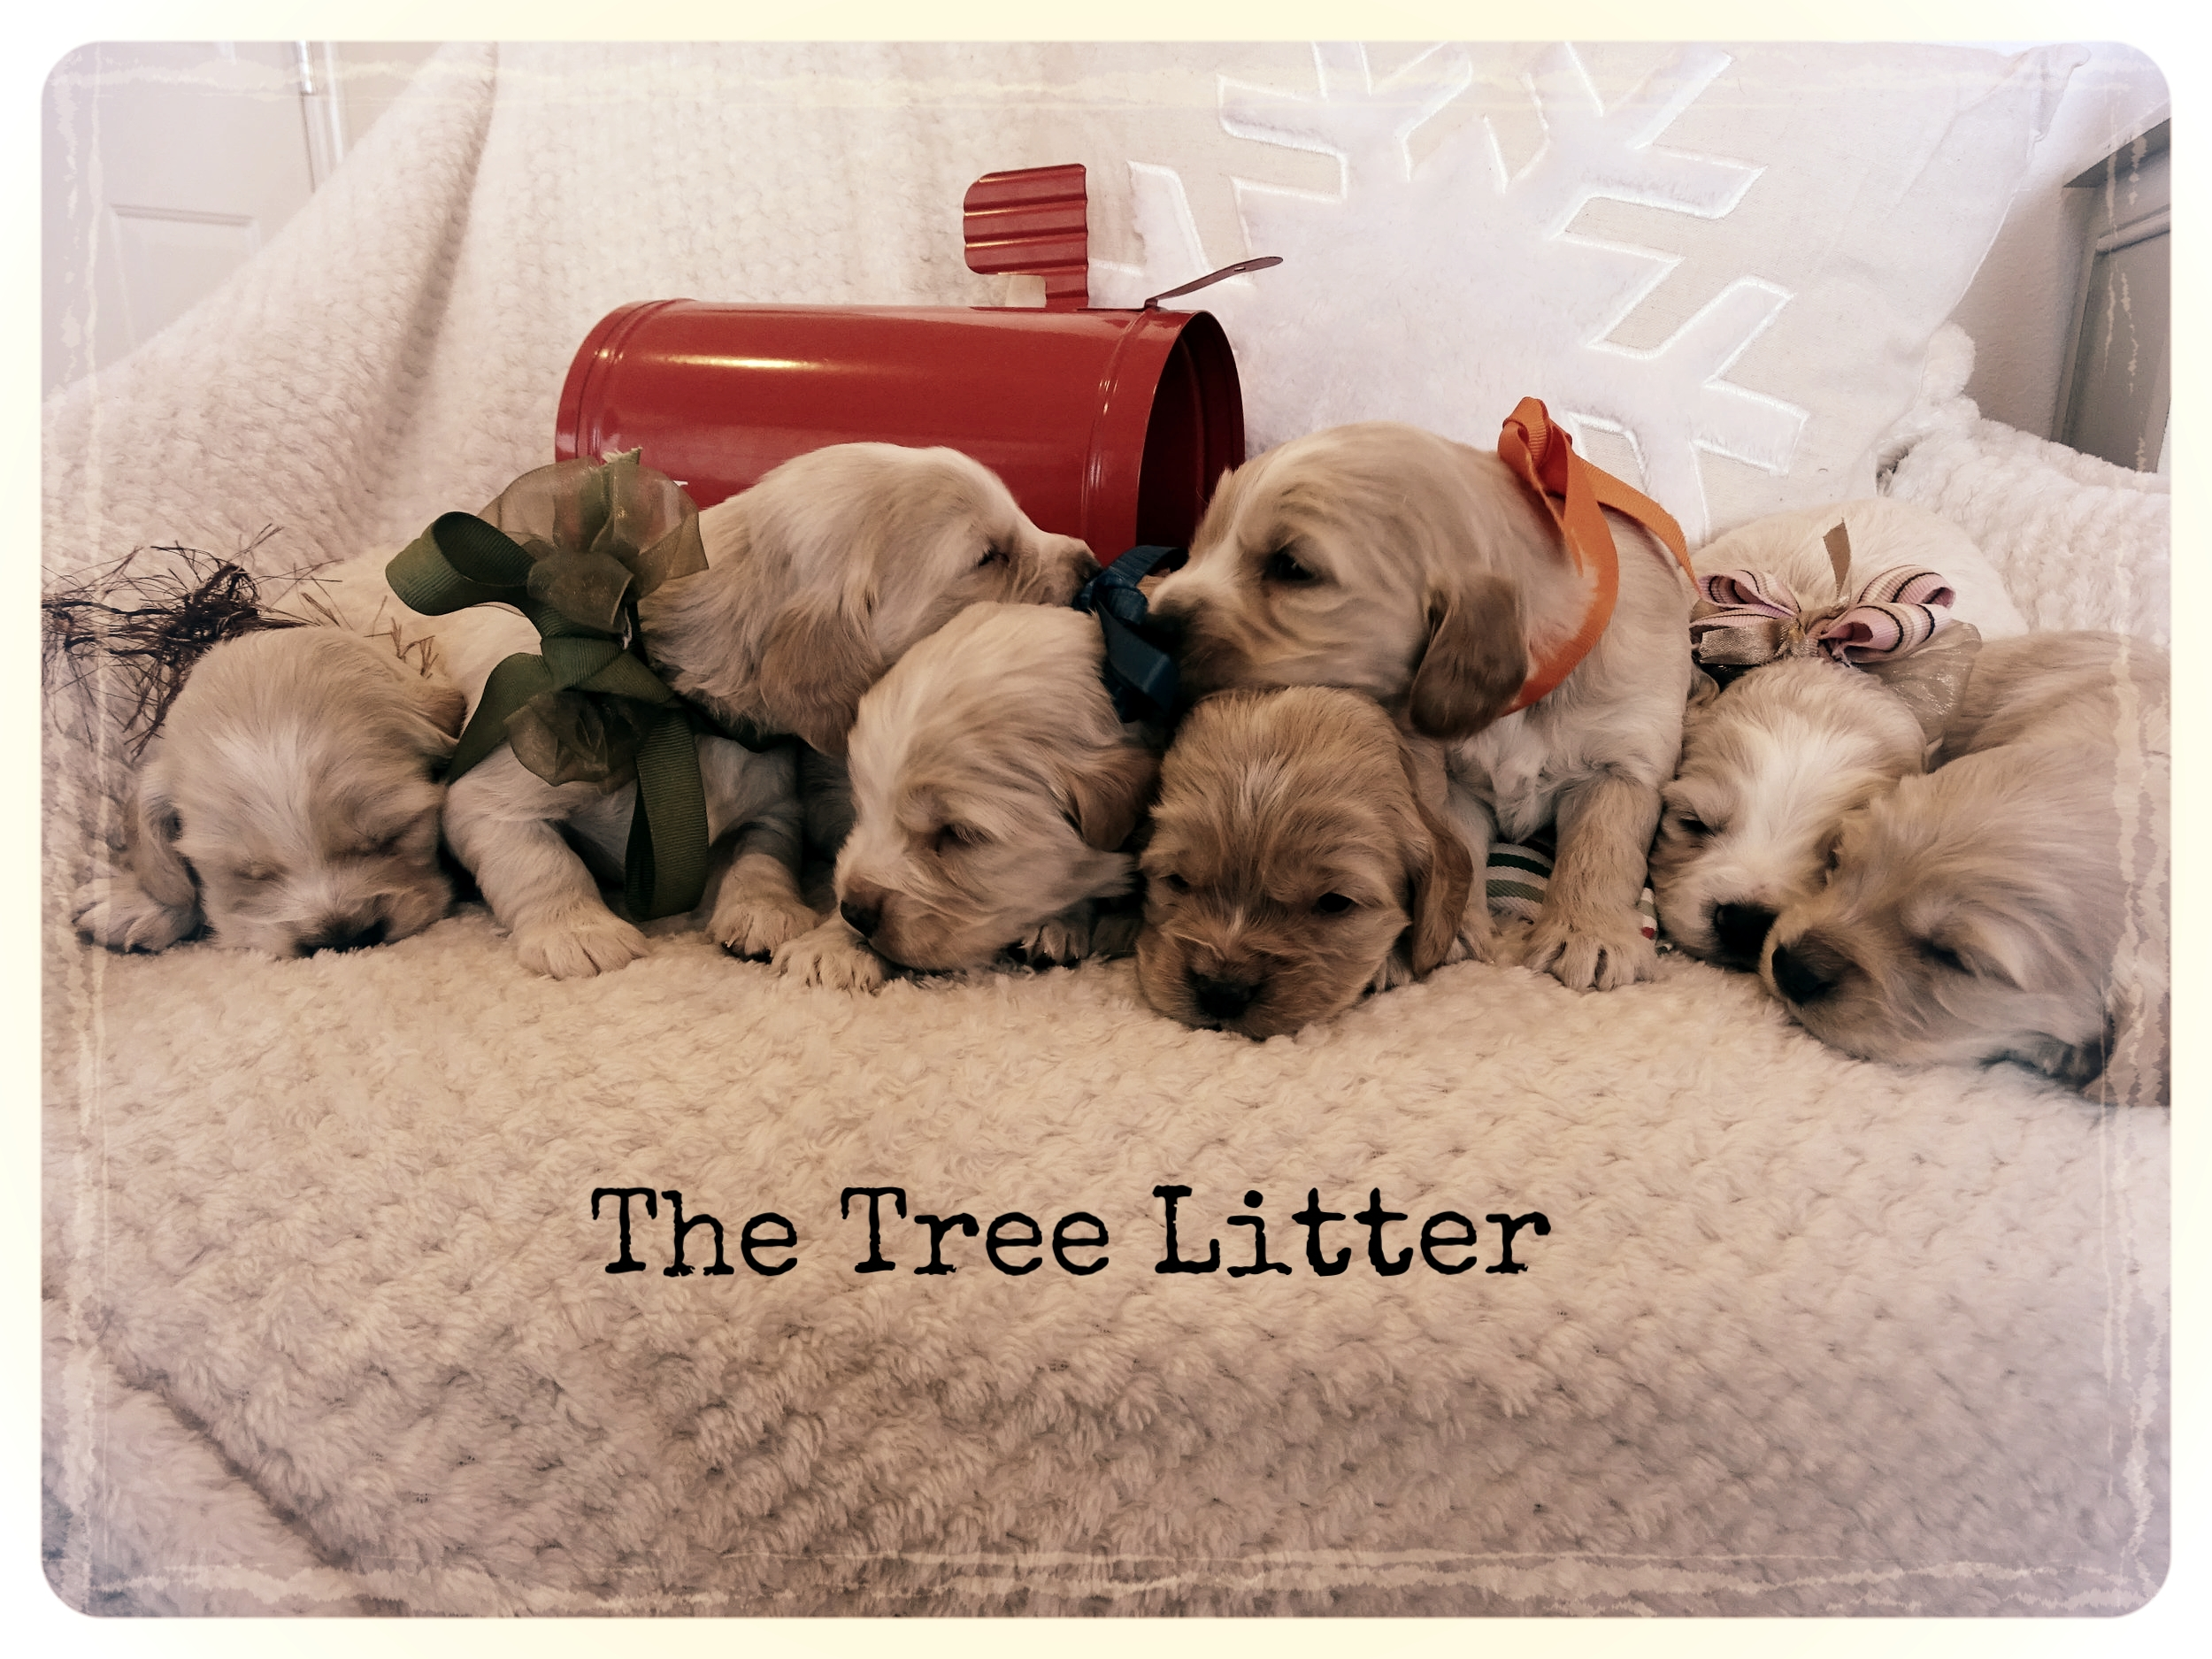 The gorgeous Miniature Golden Retrievers all have wonderful home they will go to in a few weeks!